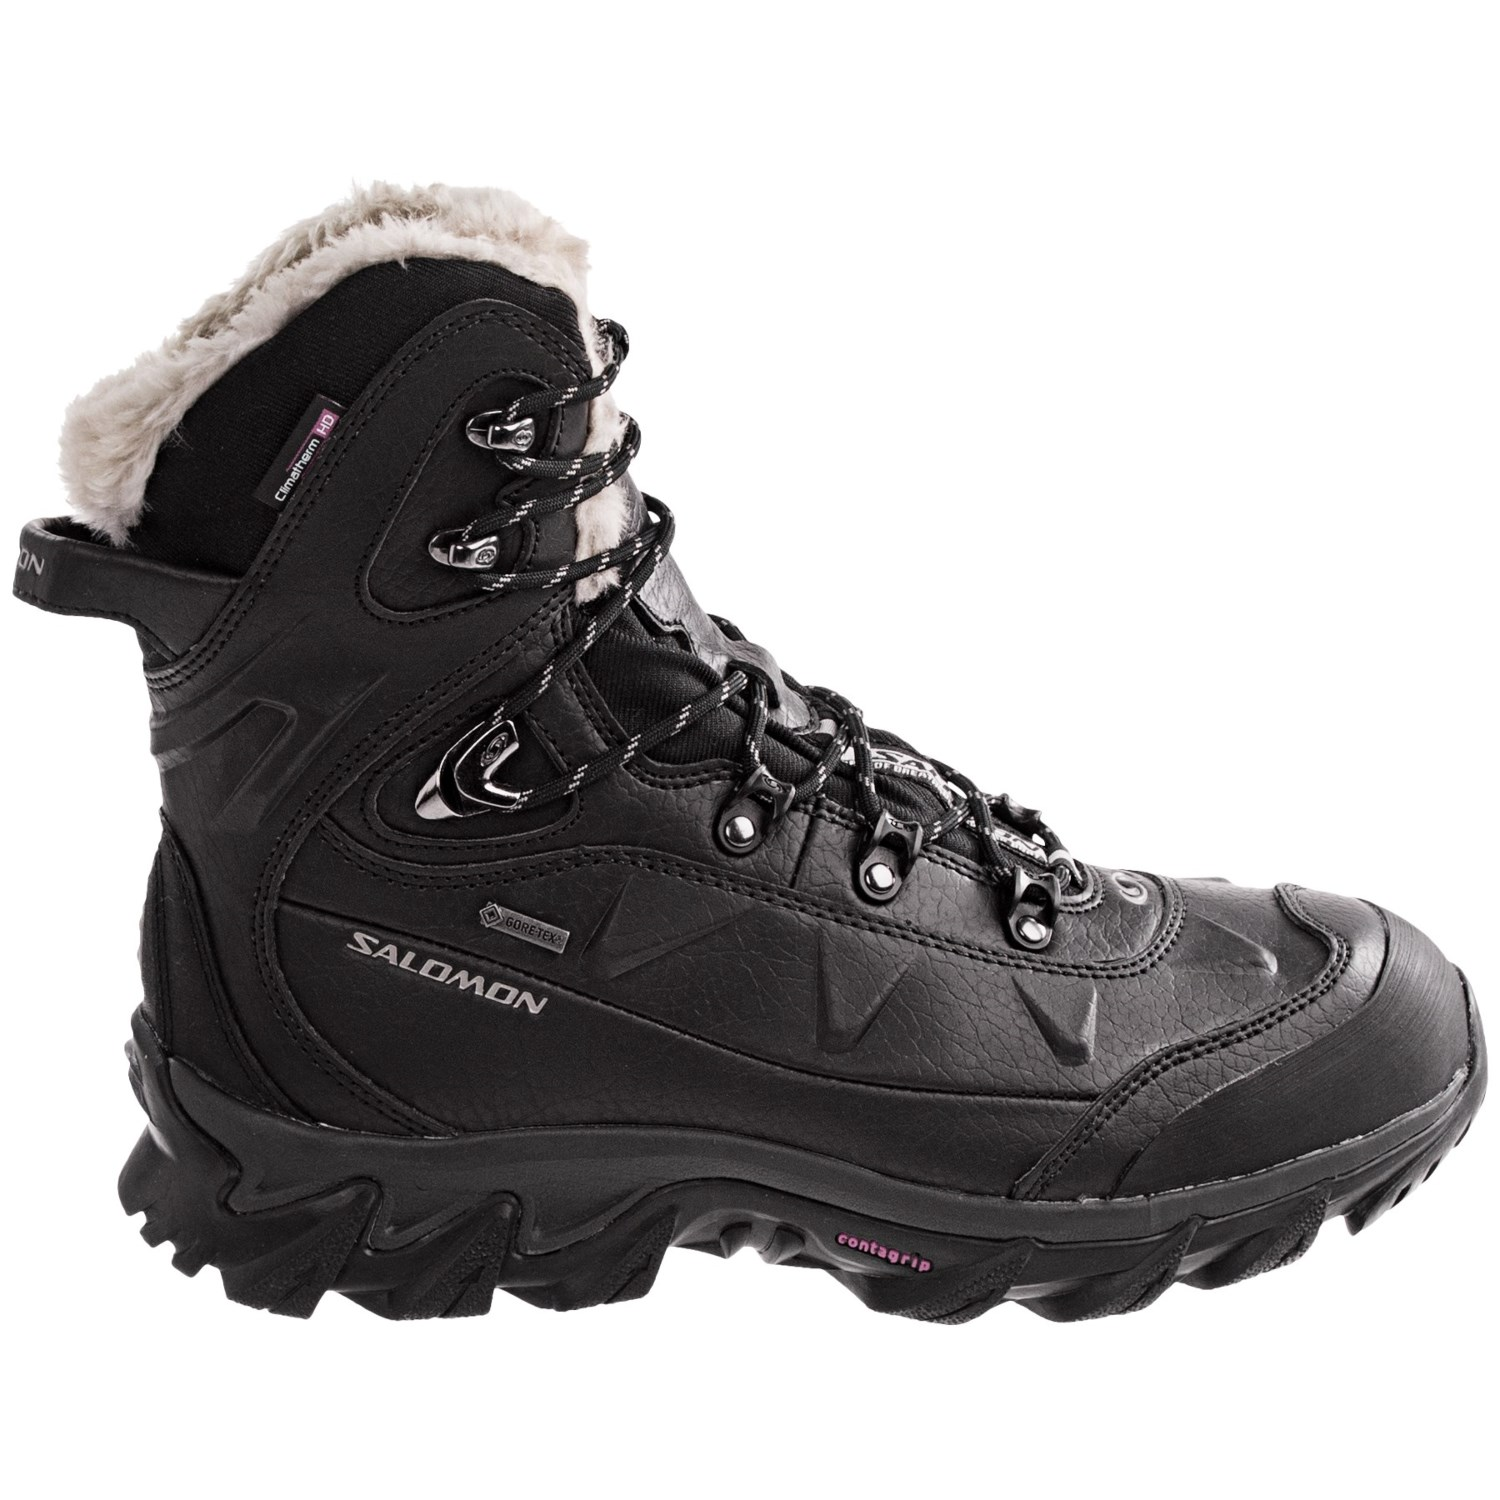 Salomon Nytro Gore-Tex® Winter Boots (For Women) 7238V